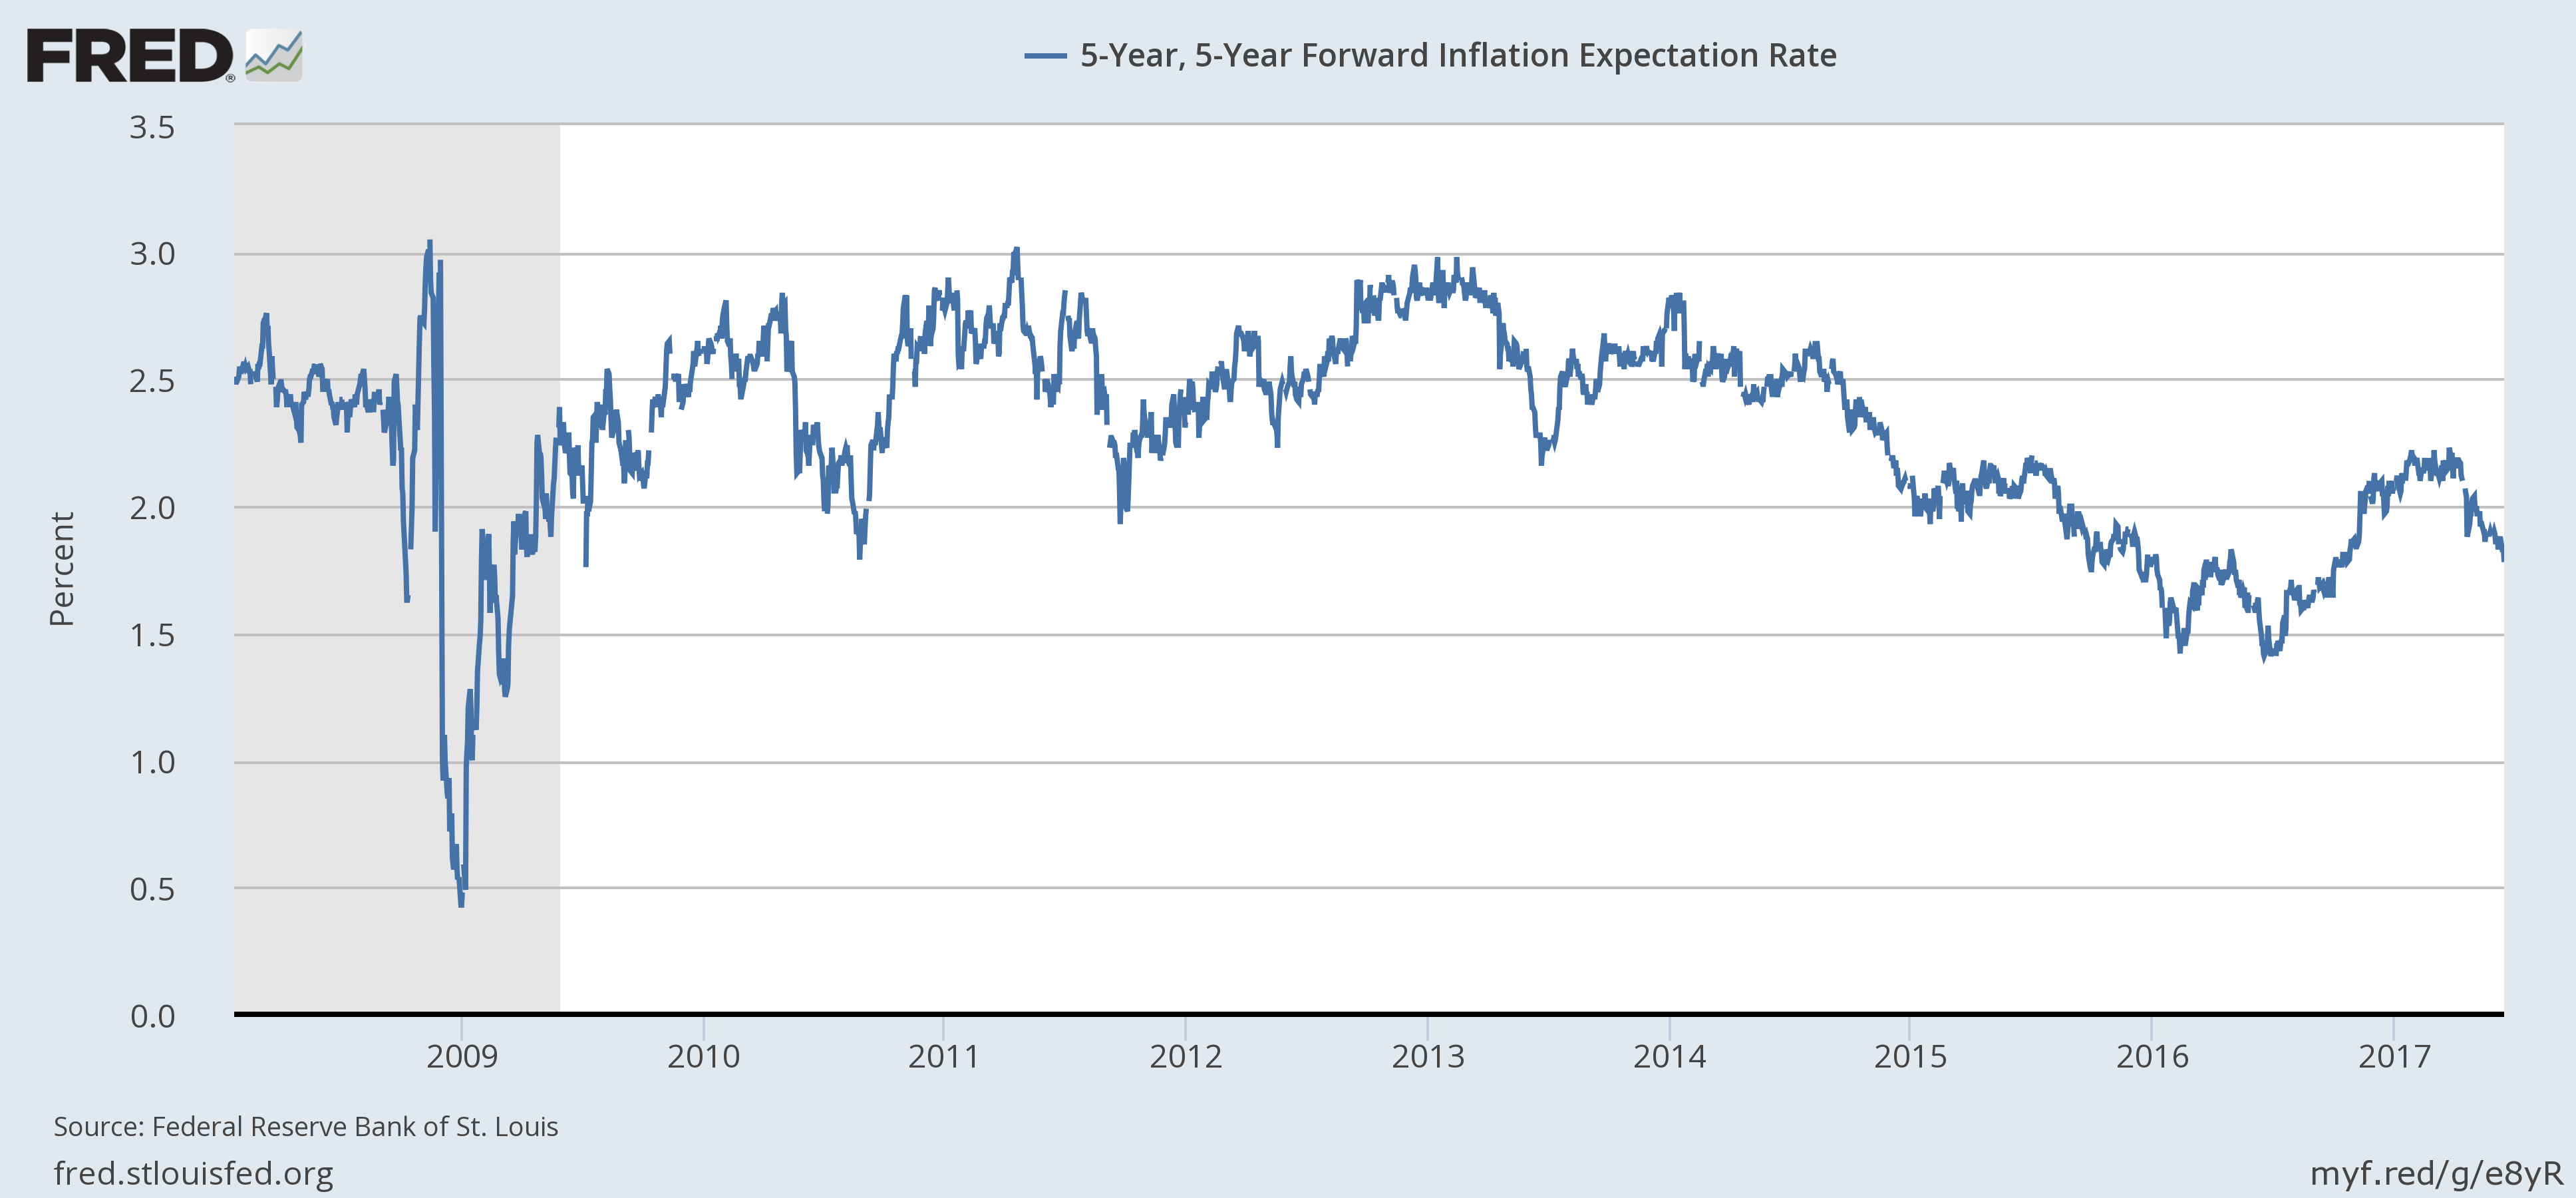 5-Year Forward Inflation Expectation Rate